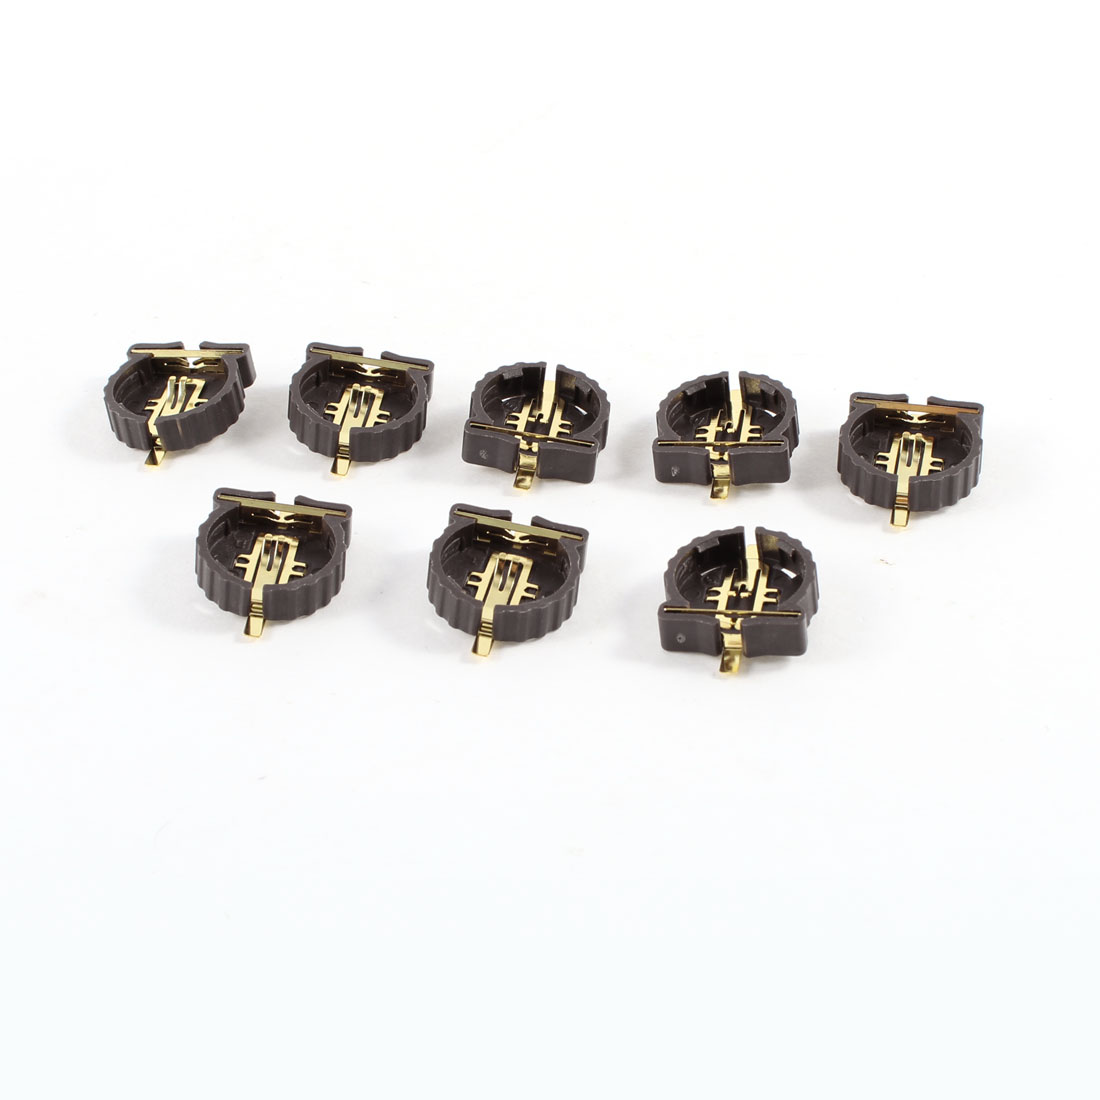 8 Pcs Brown Plastic Button Coin Cell Battery Sockets Holder for CR1220